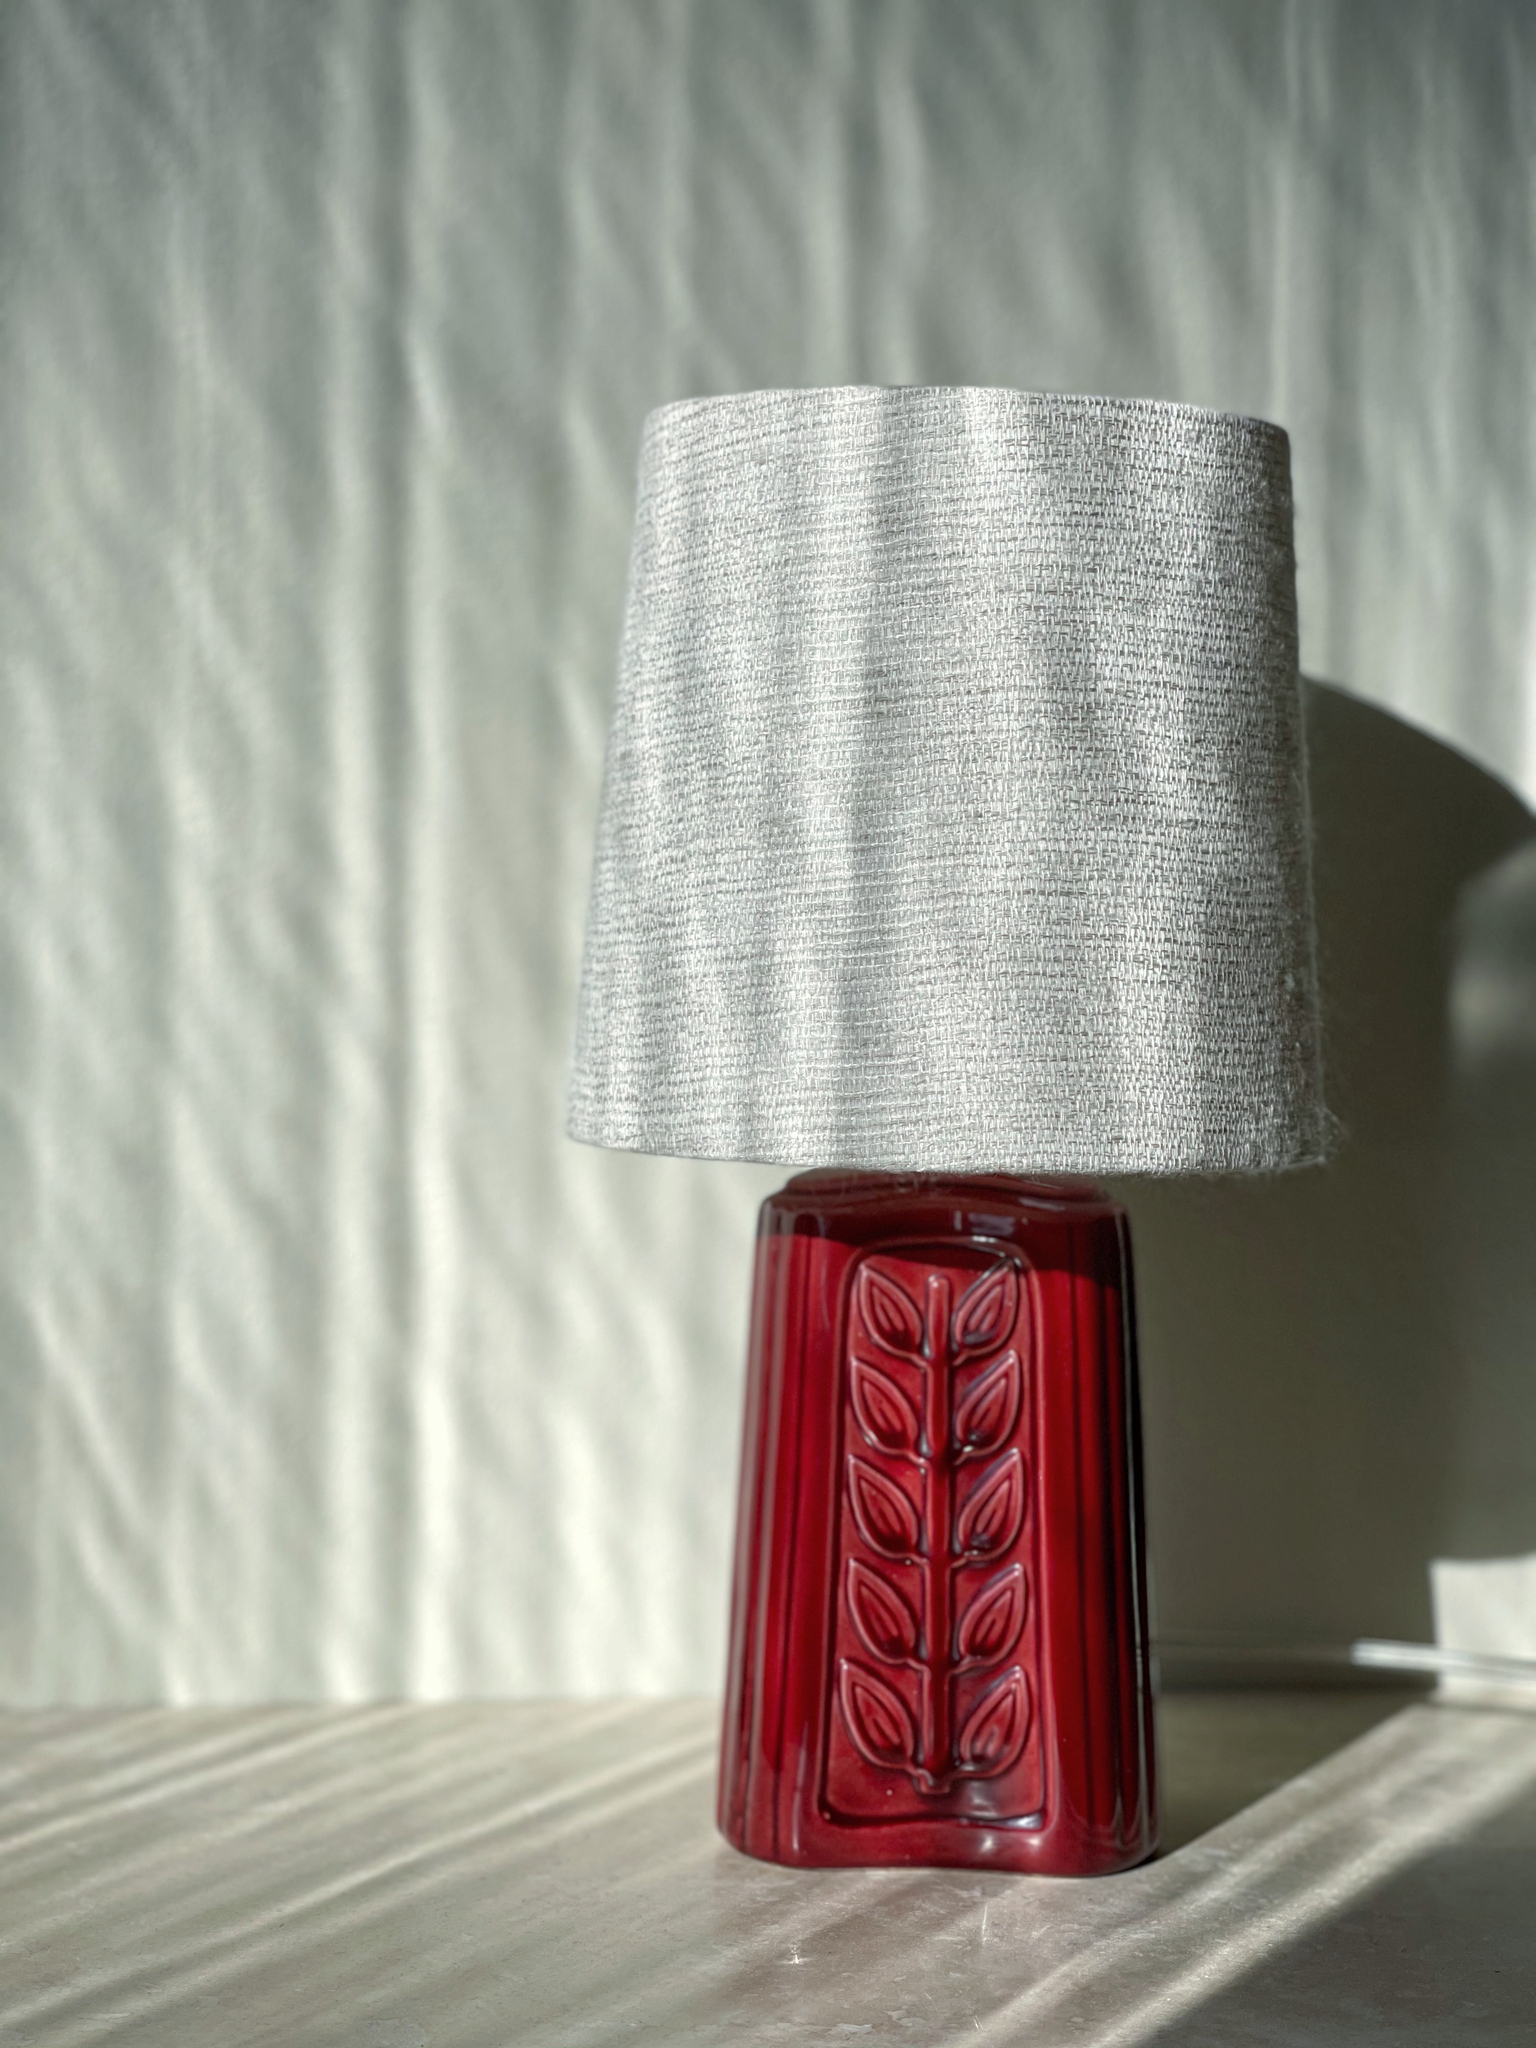 Gunnar Nylund Red Stoneware Table Lamp for Rörstrand.1960s.